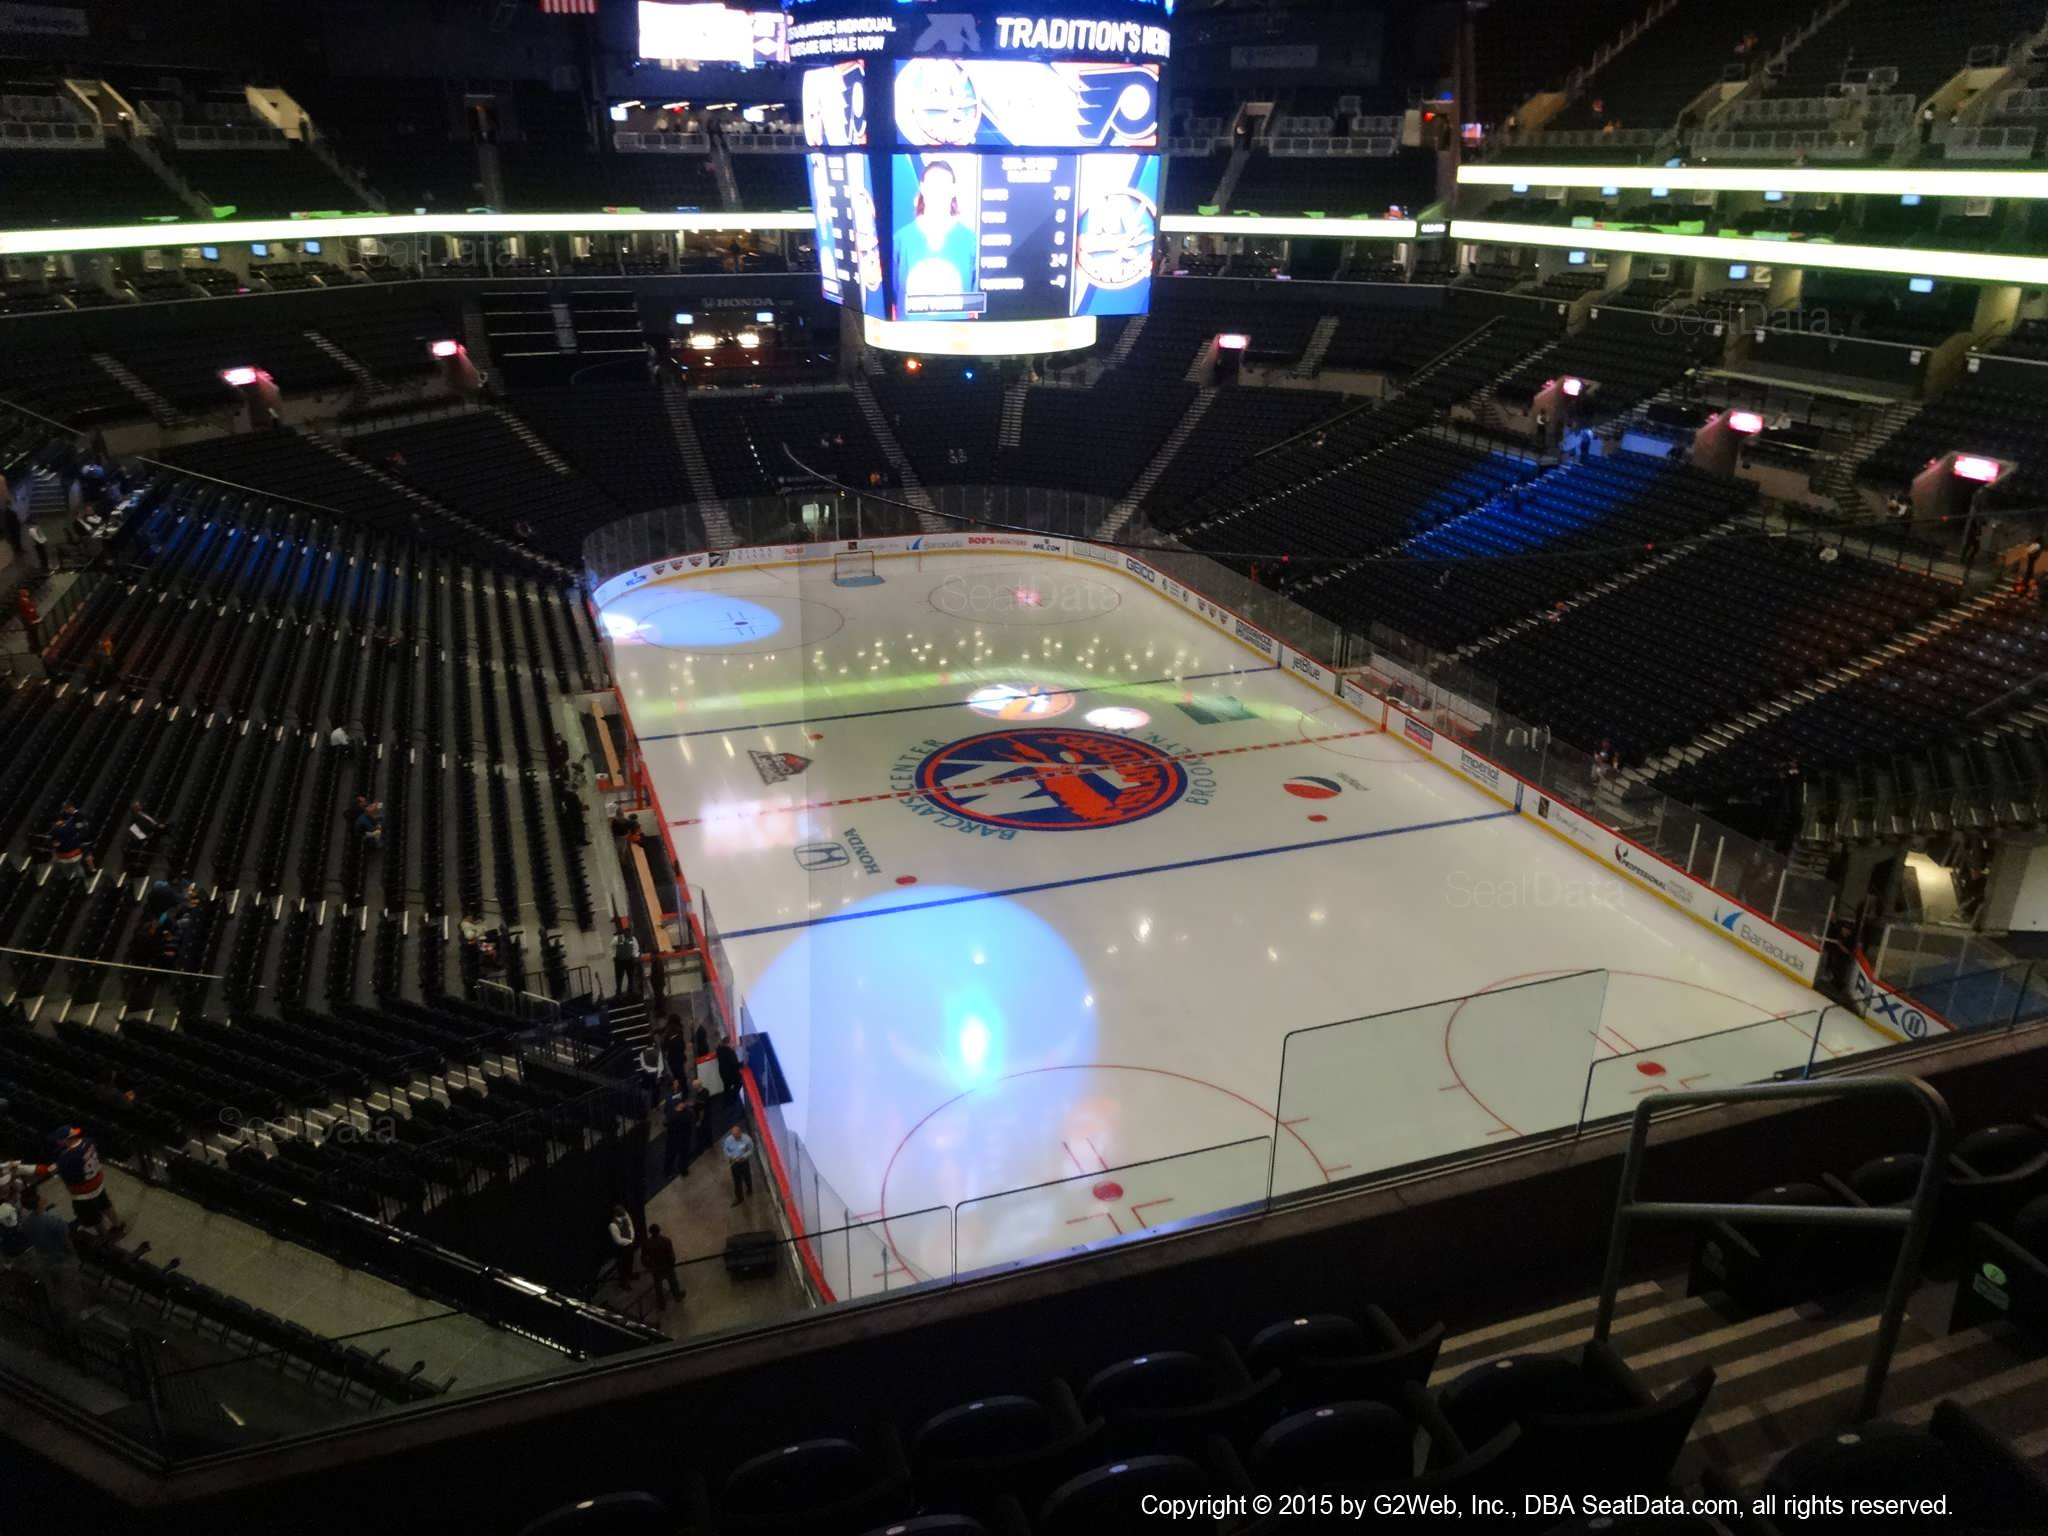 Seat View from Section 202 at the Barclays Center, home of the New York Islanders